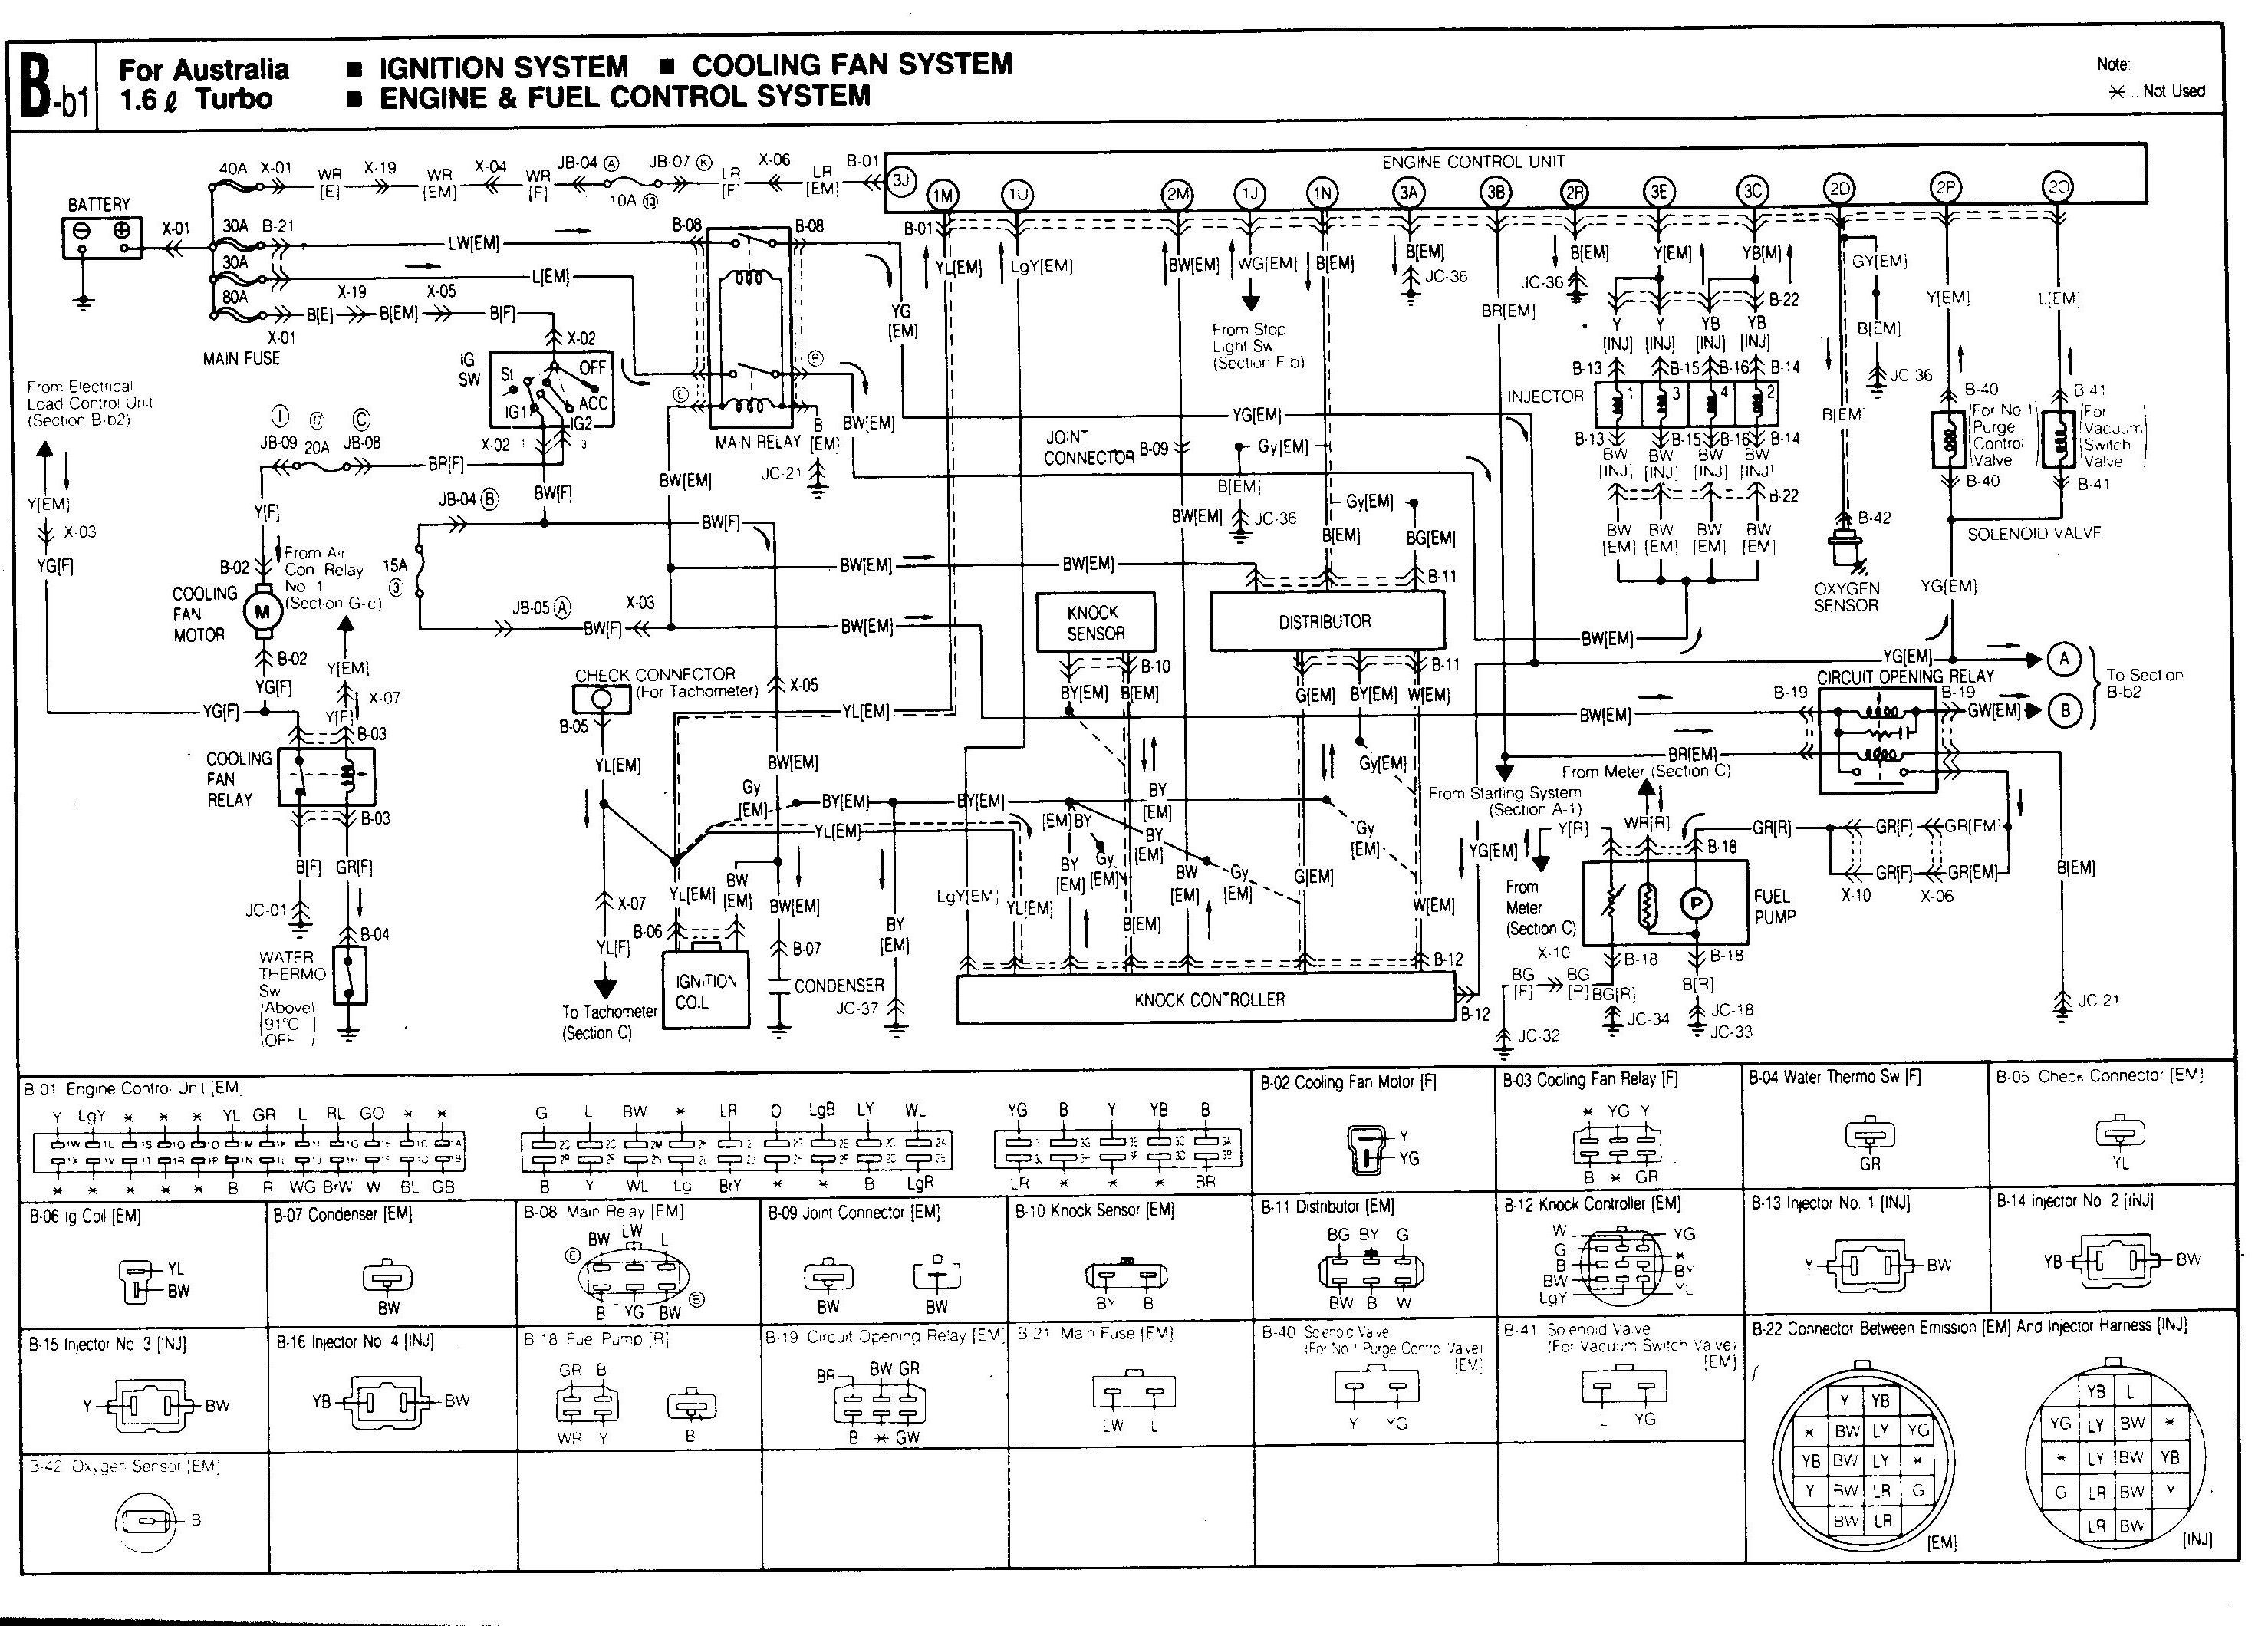 2007 Kia Optima Engine Diagram Wiring Diagram Kia Bongo Wire Data Schema • Of 2007 Kia Optima Engine Diagram 2003 Kia Optima Wiring Diagram Another Blog About Wiring Diagram •